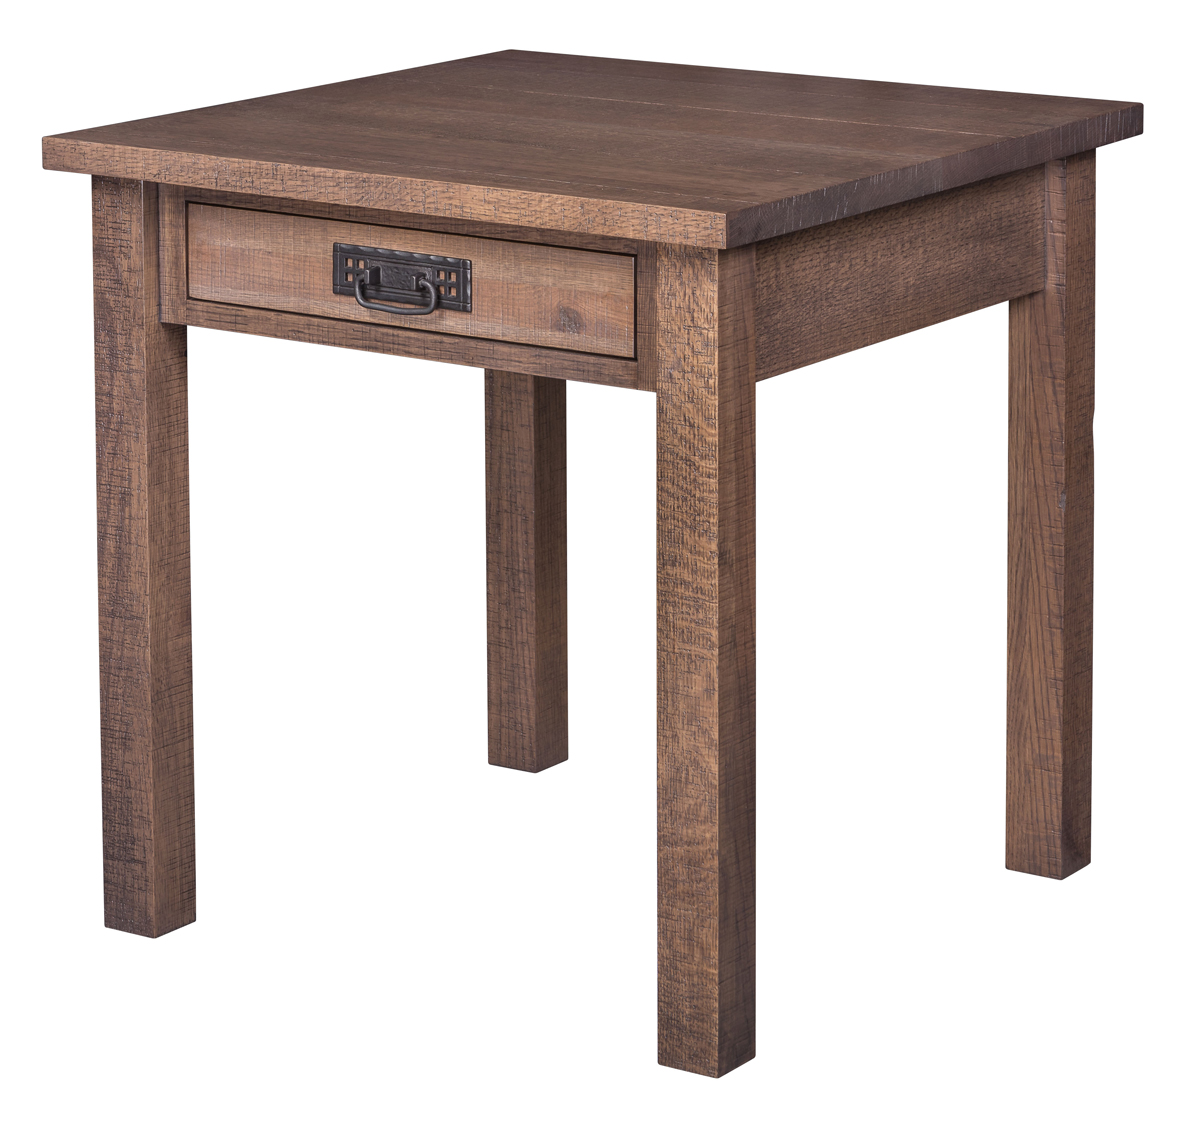 Amish Q.S. White Oak Furniture | Amish Outlet Store